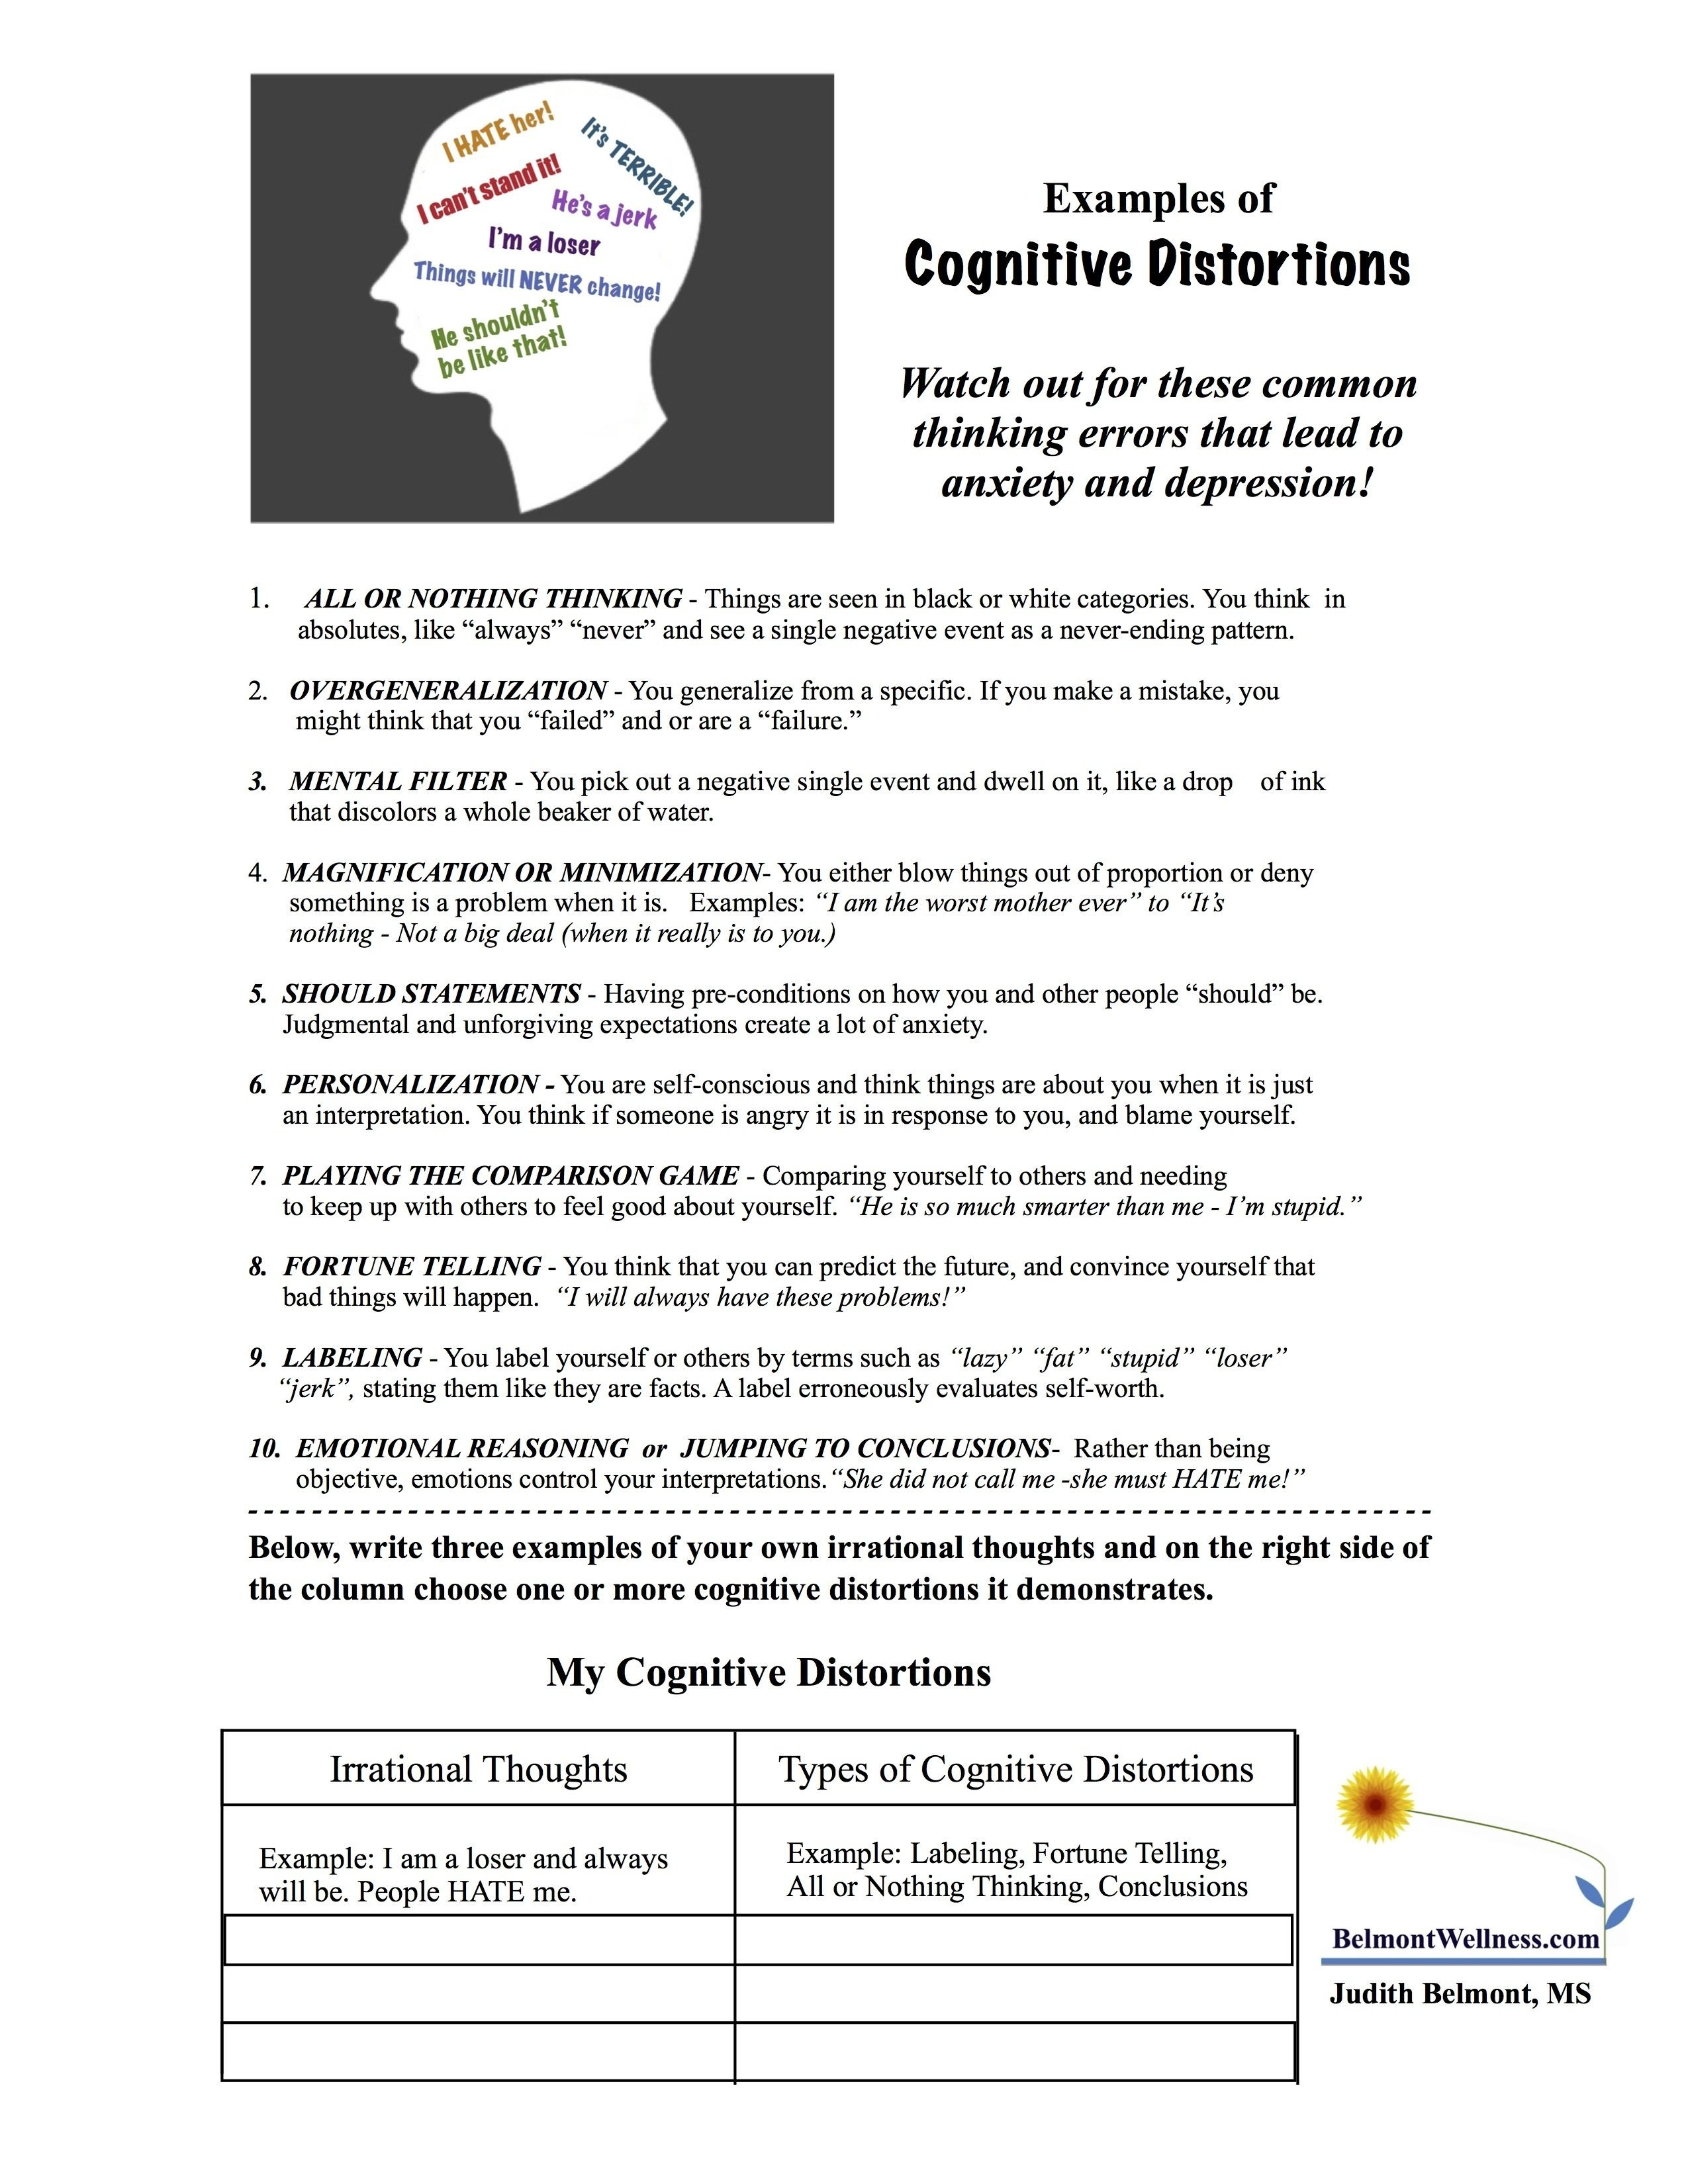 10 Elegant Group Therapy Ideas For Mental Health cognitive distortions 2550x3300 therapy worksheets 2020